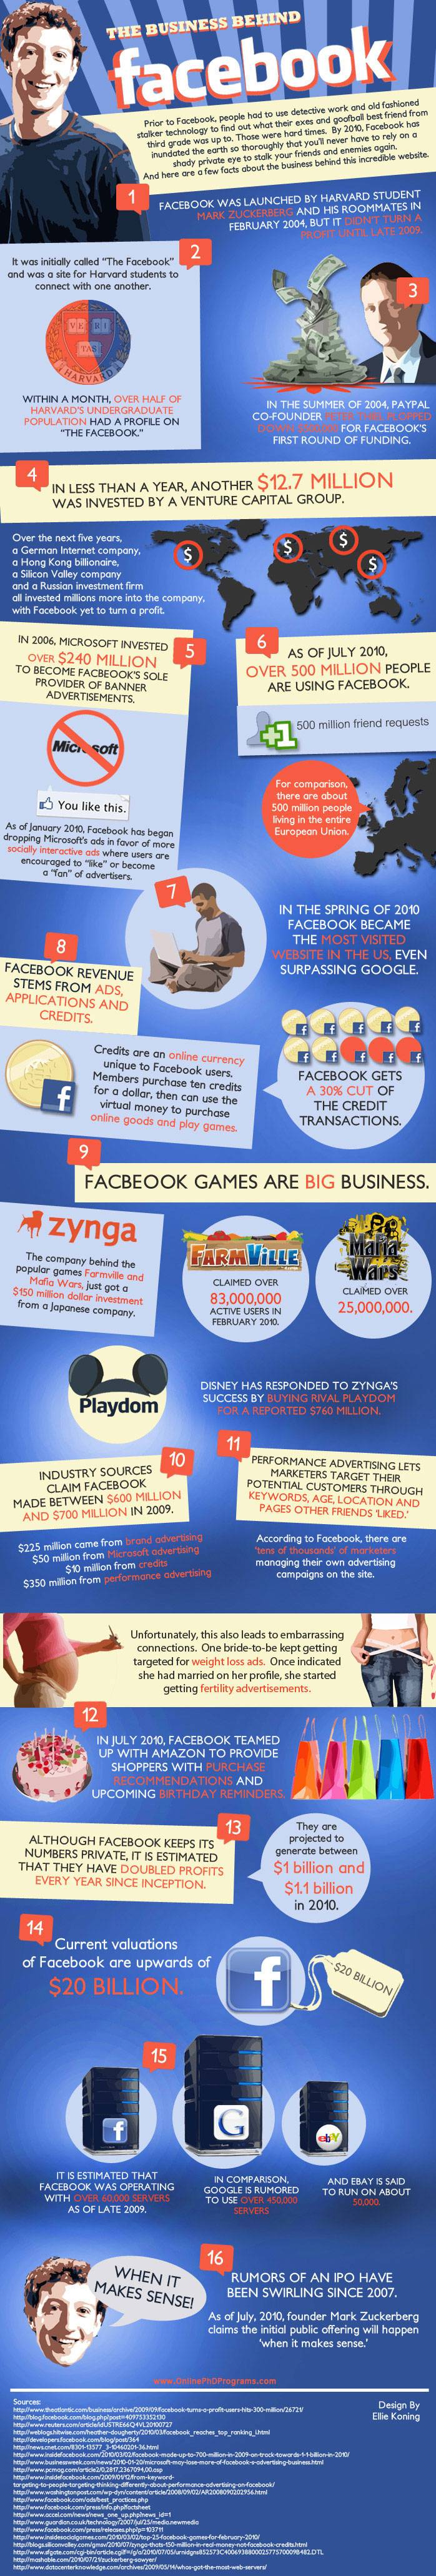 The Business Behind Facebook [Infographic]